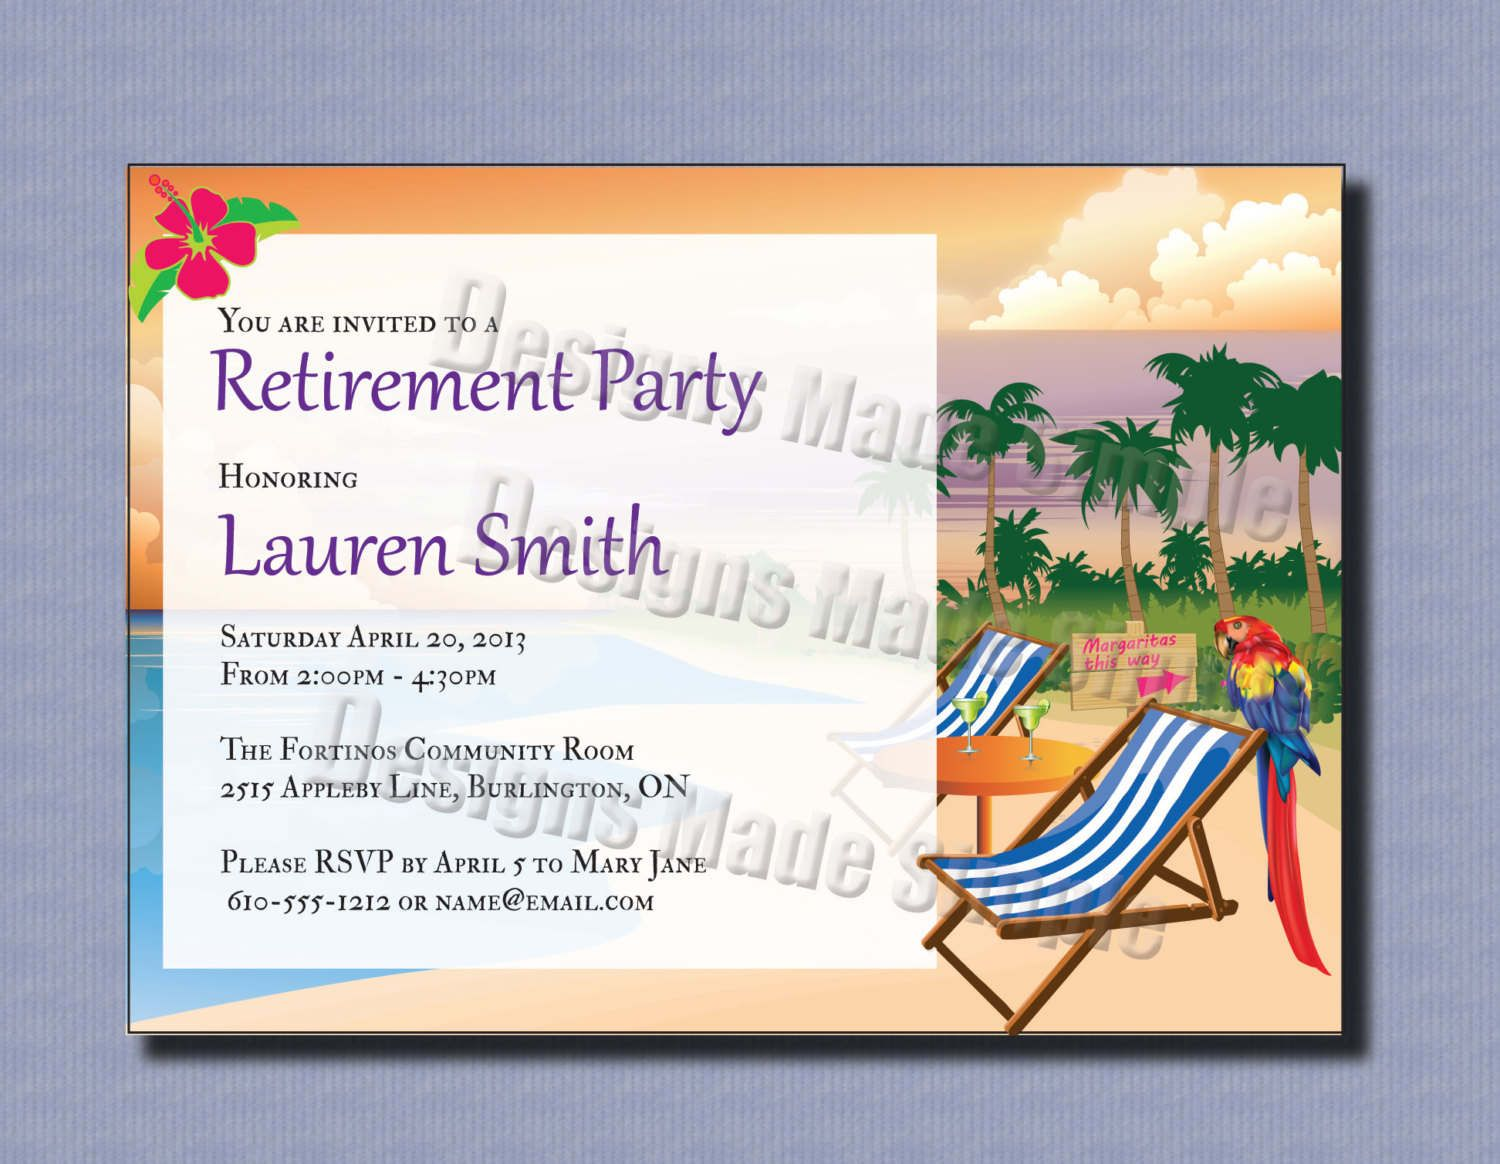 retirement party invitations template xizvtxm retirement or printable retirement party invitations templates